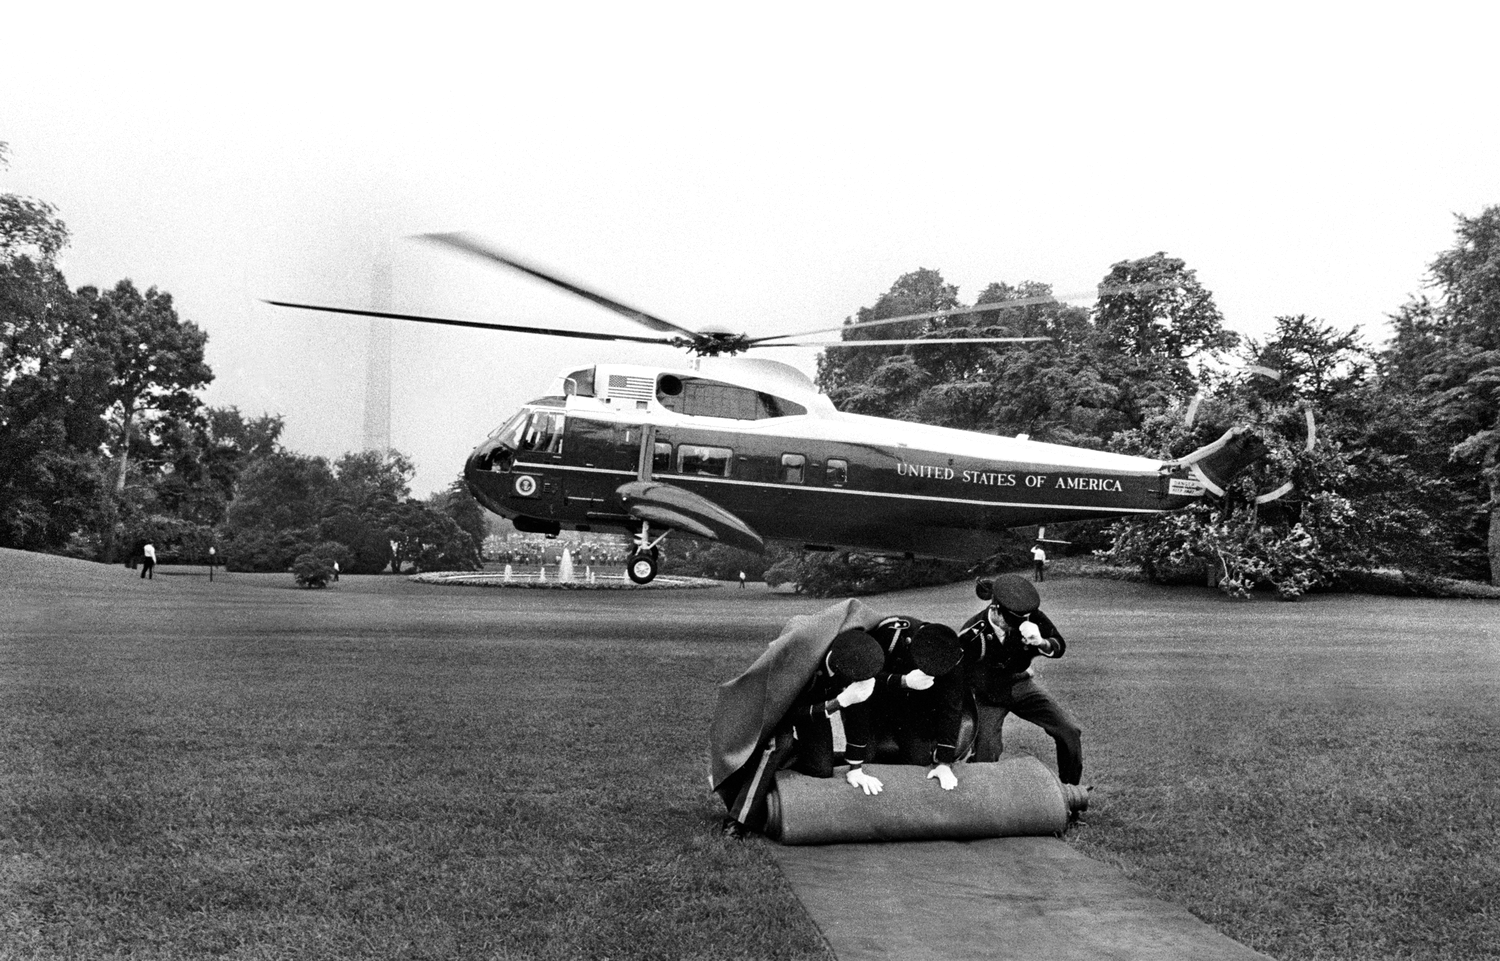 President Richard Nixon and his wife leave the White House in a helicopter, to their home in San Clemente, California after his resignation.  August 9, 1974  © Jean-Pierre Laffont